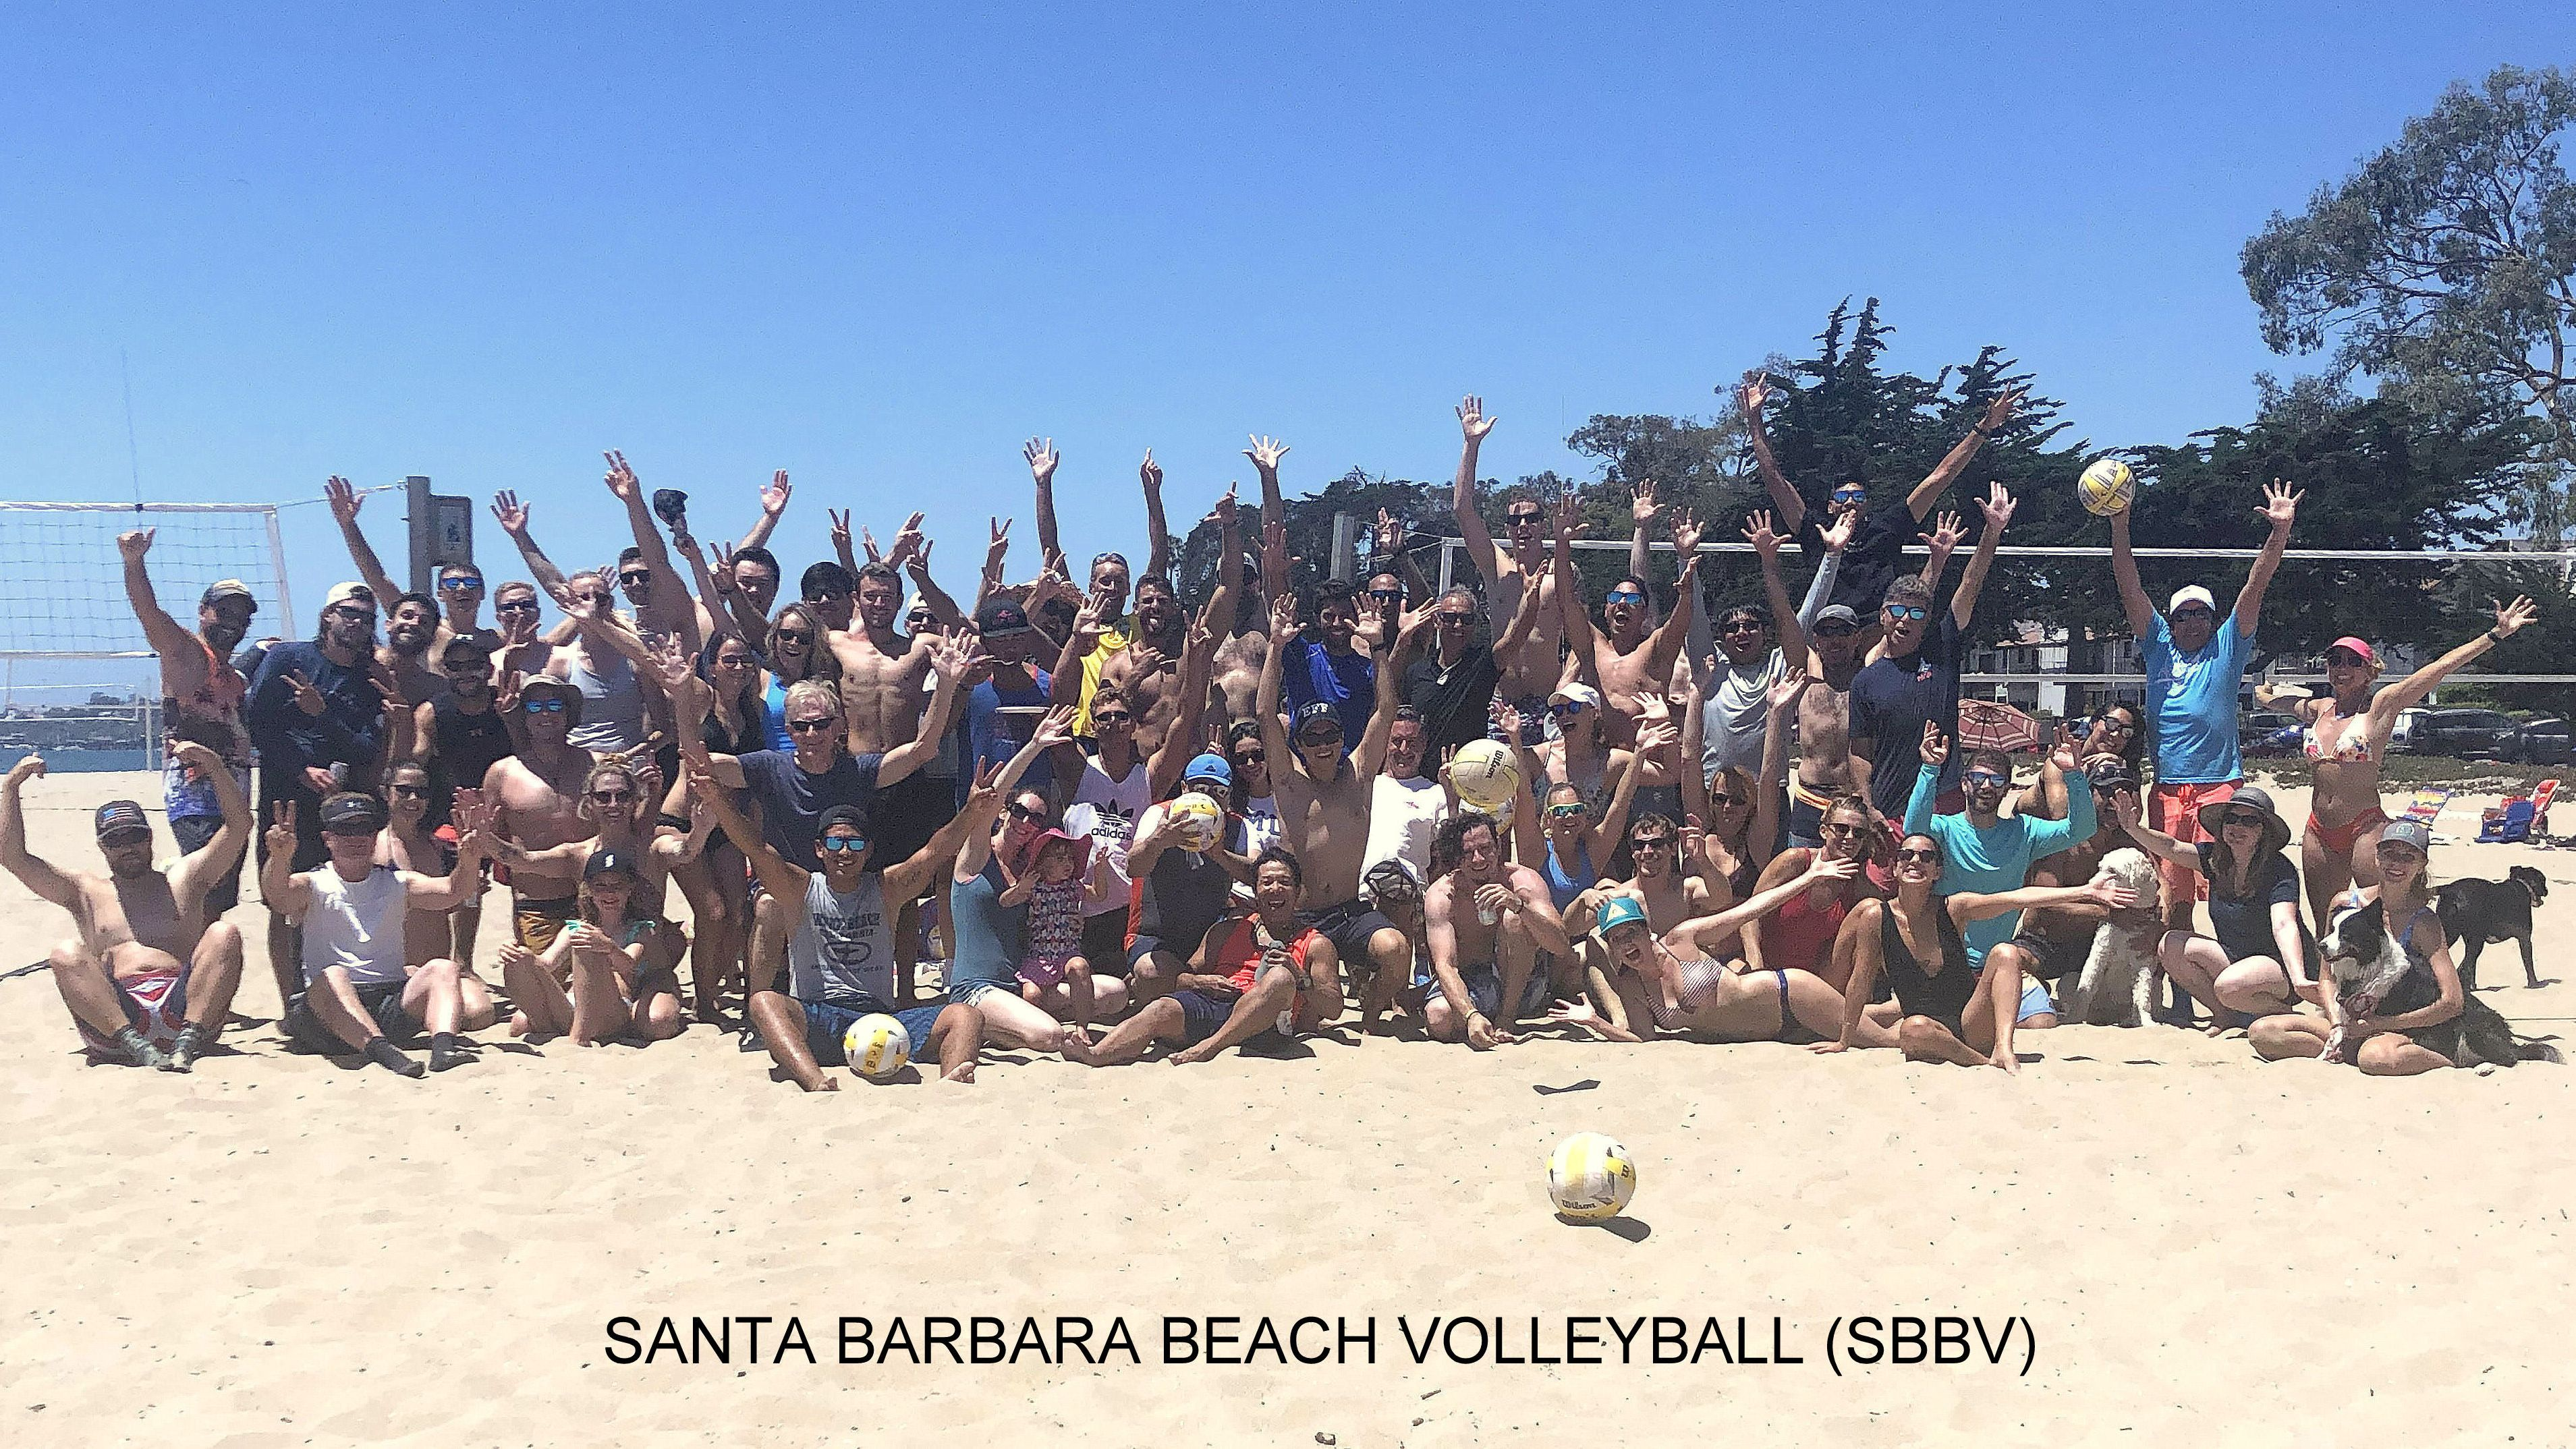 Santa Barbara Beach Volleyball (SBBV)